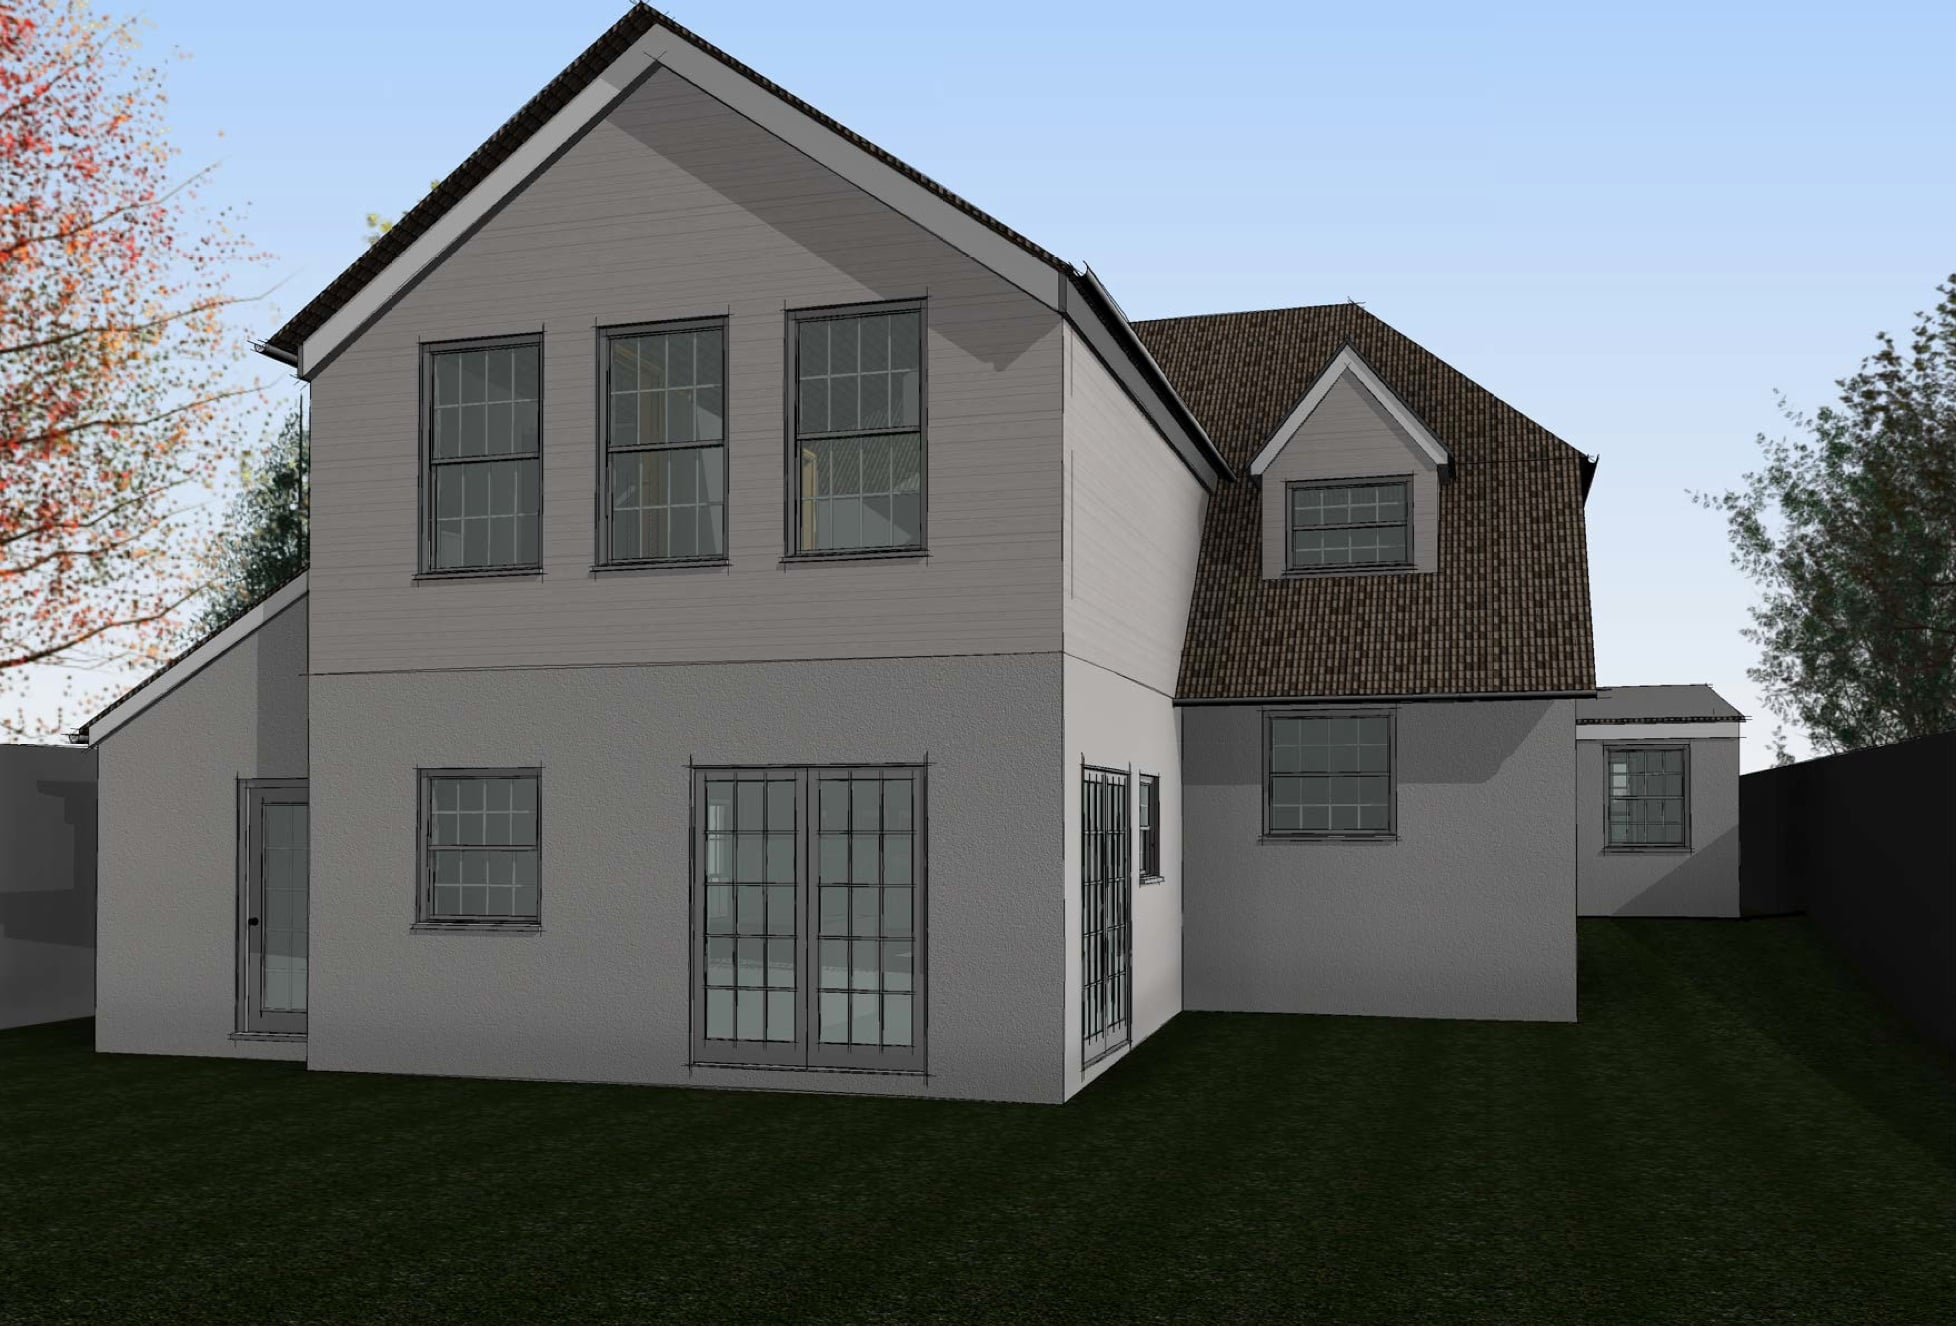 Rear Elevation 3D Kennet Design Architecture & Planning Wiltshire